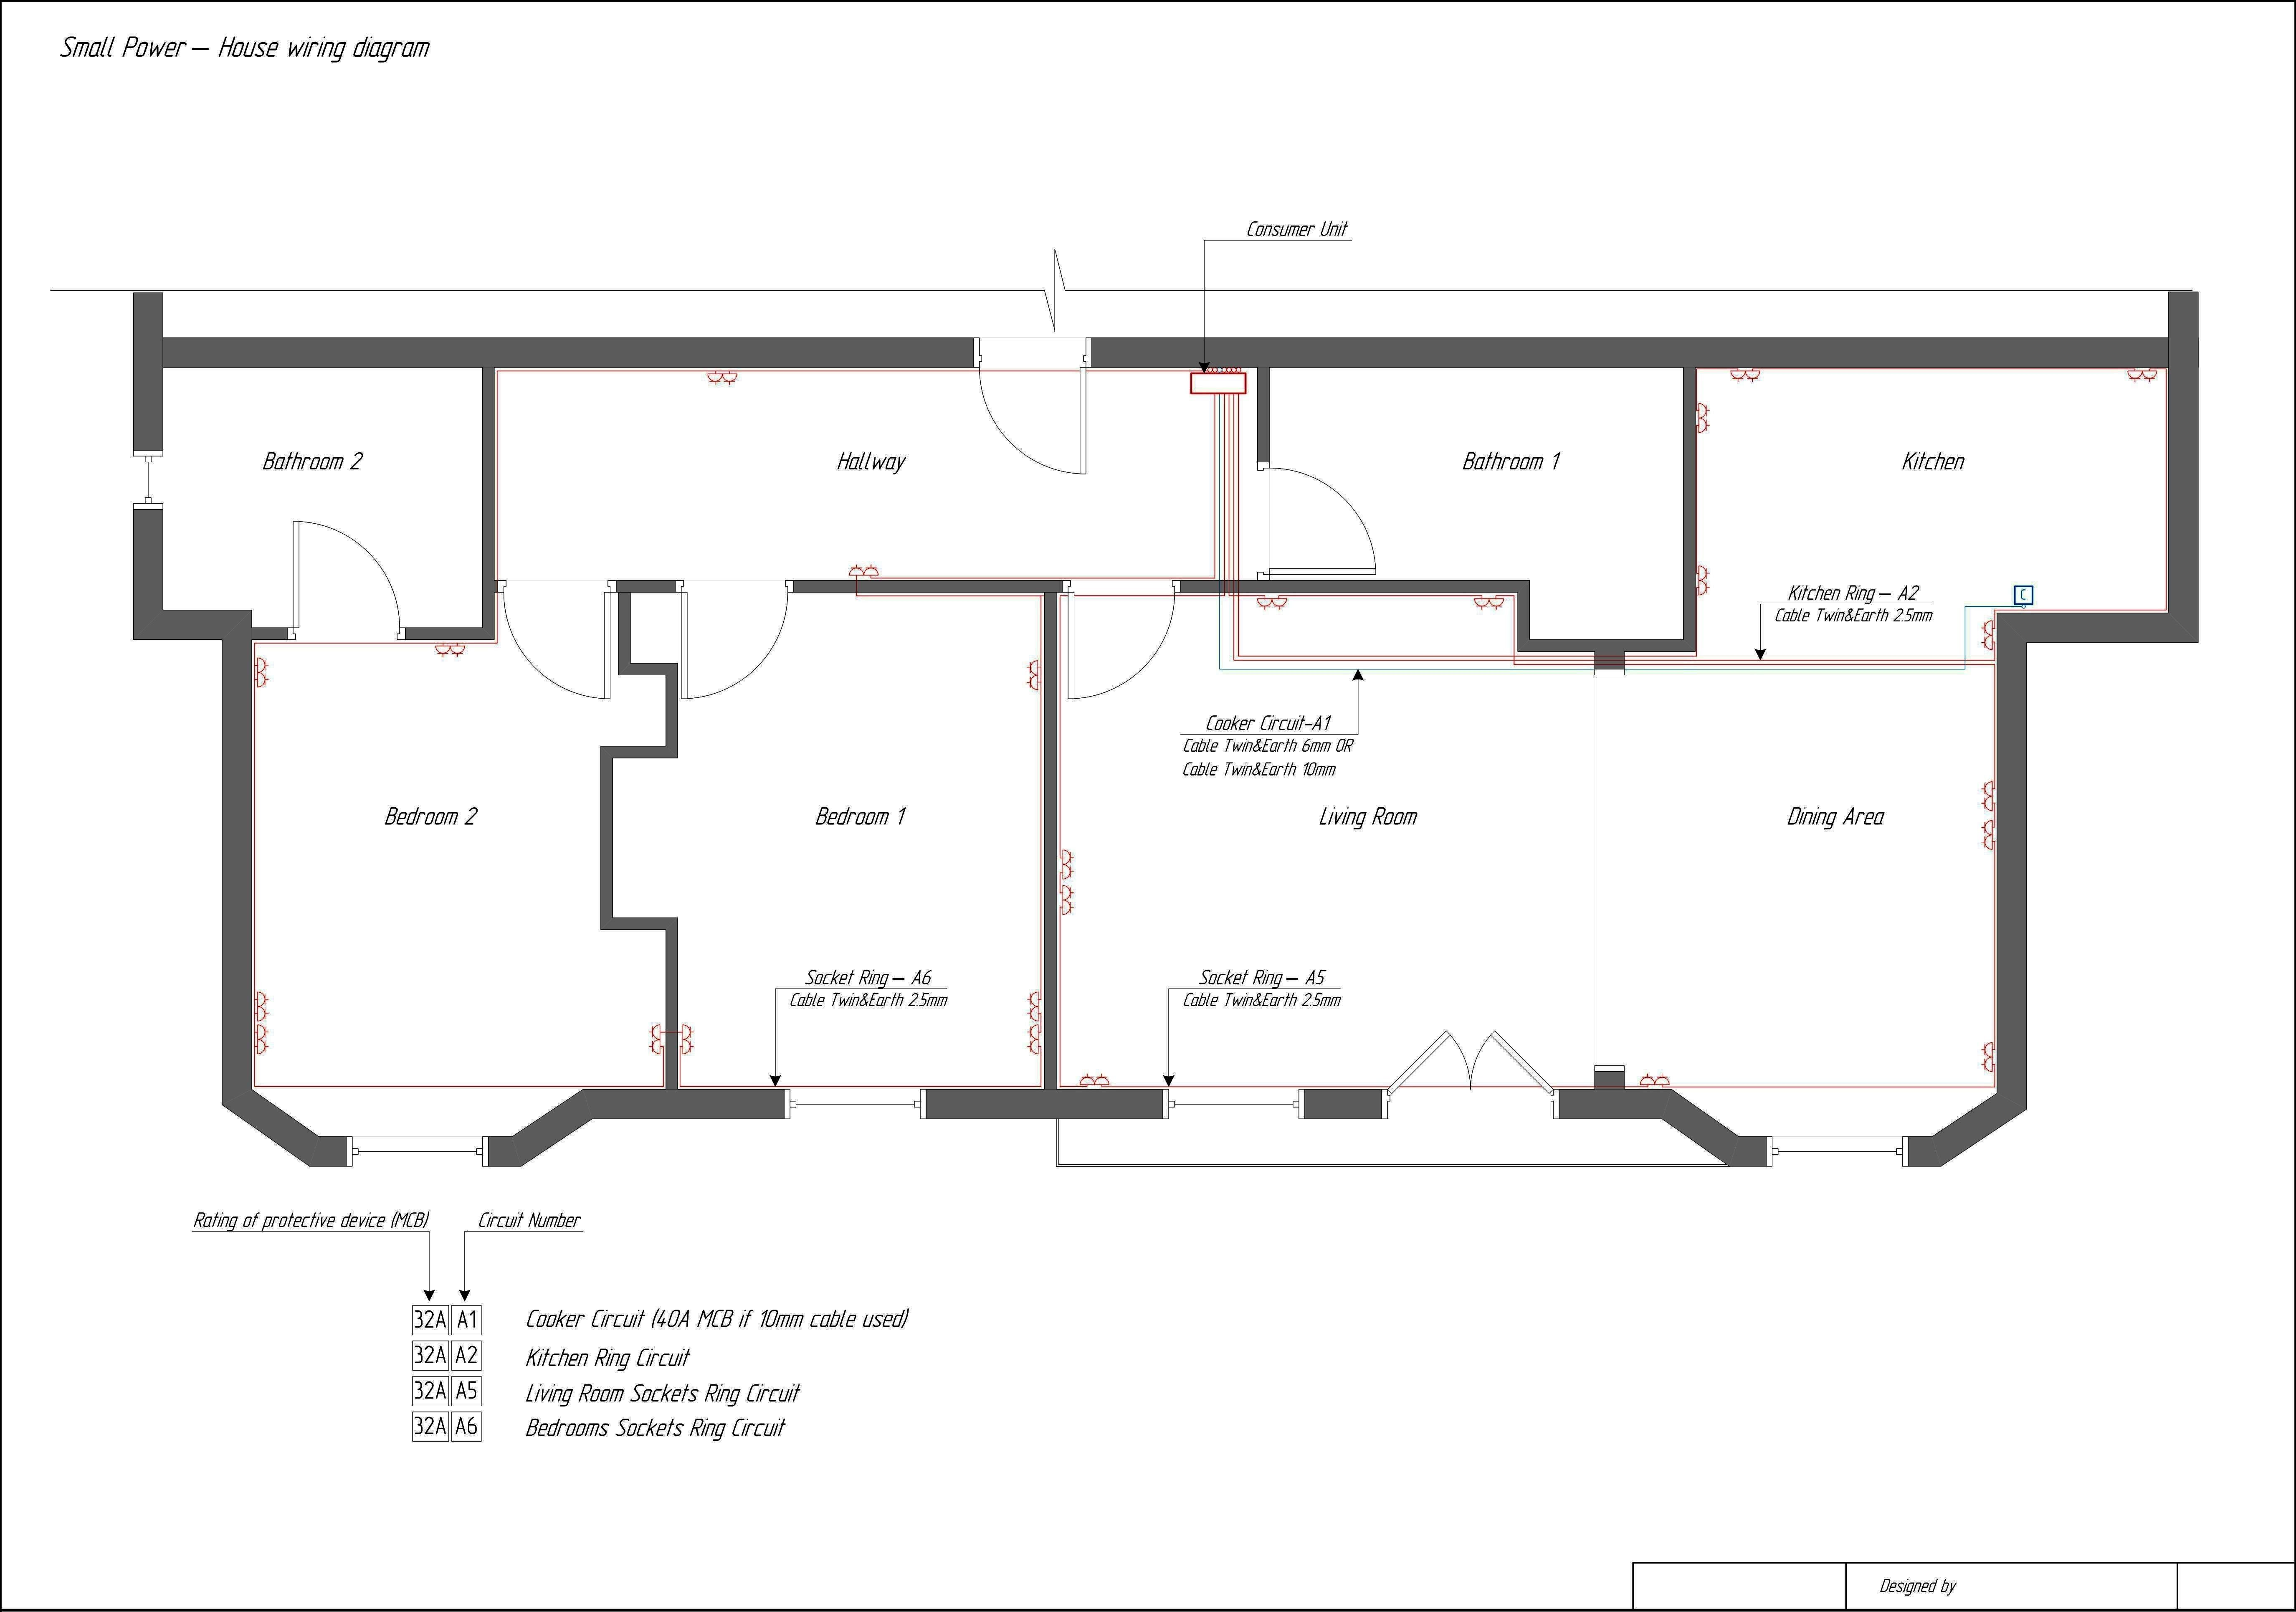 New House Wiring Diagram South Africa Diagram Diagramsample Diagramtemplate Check More At Htt House Wiring Electrical Circuit Diagram Home Electrical Wiring